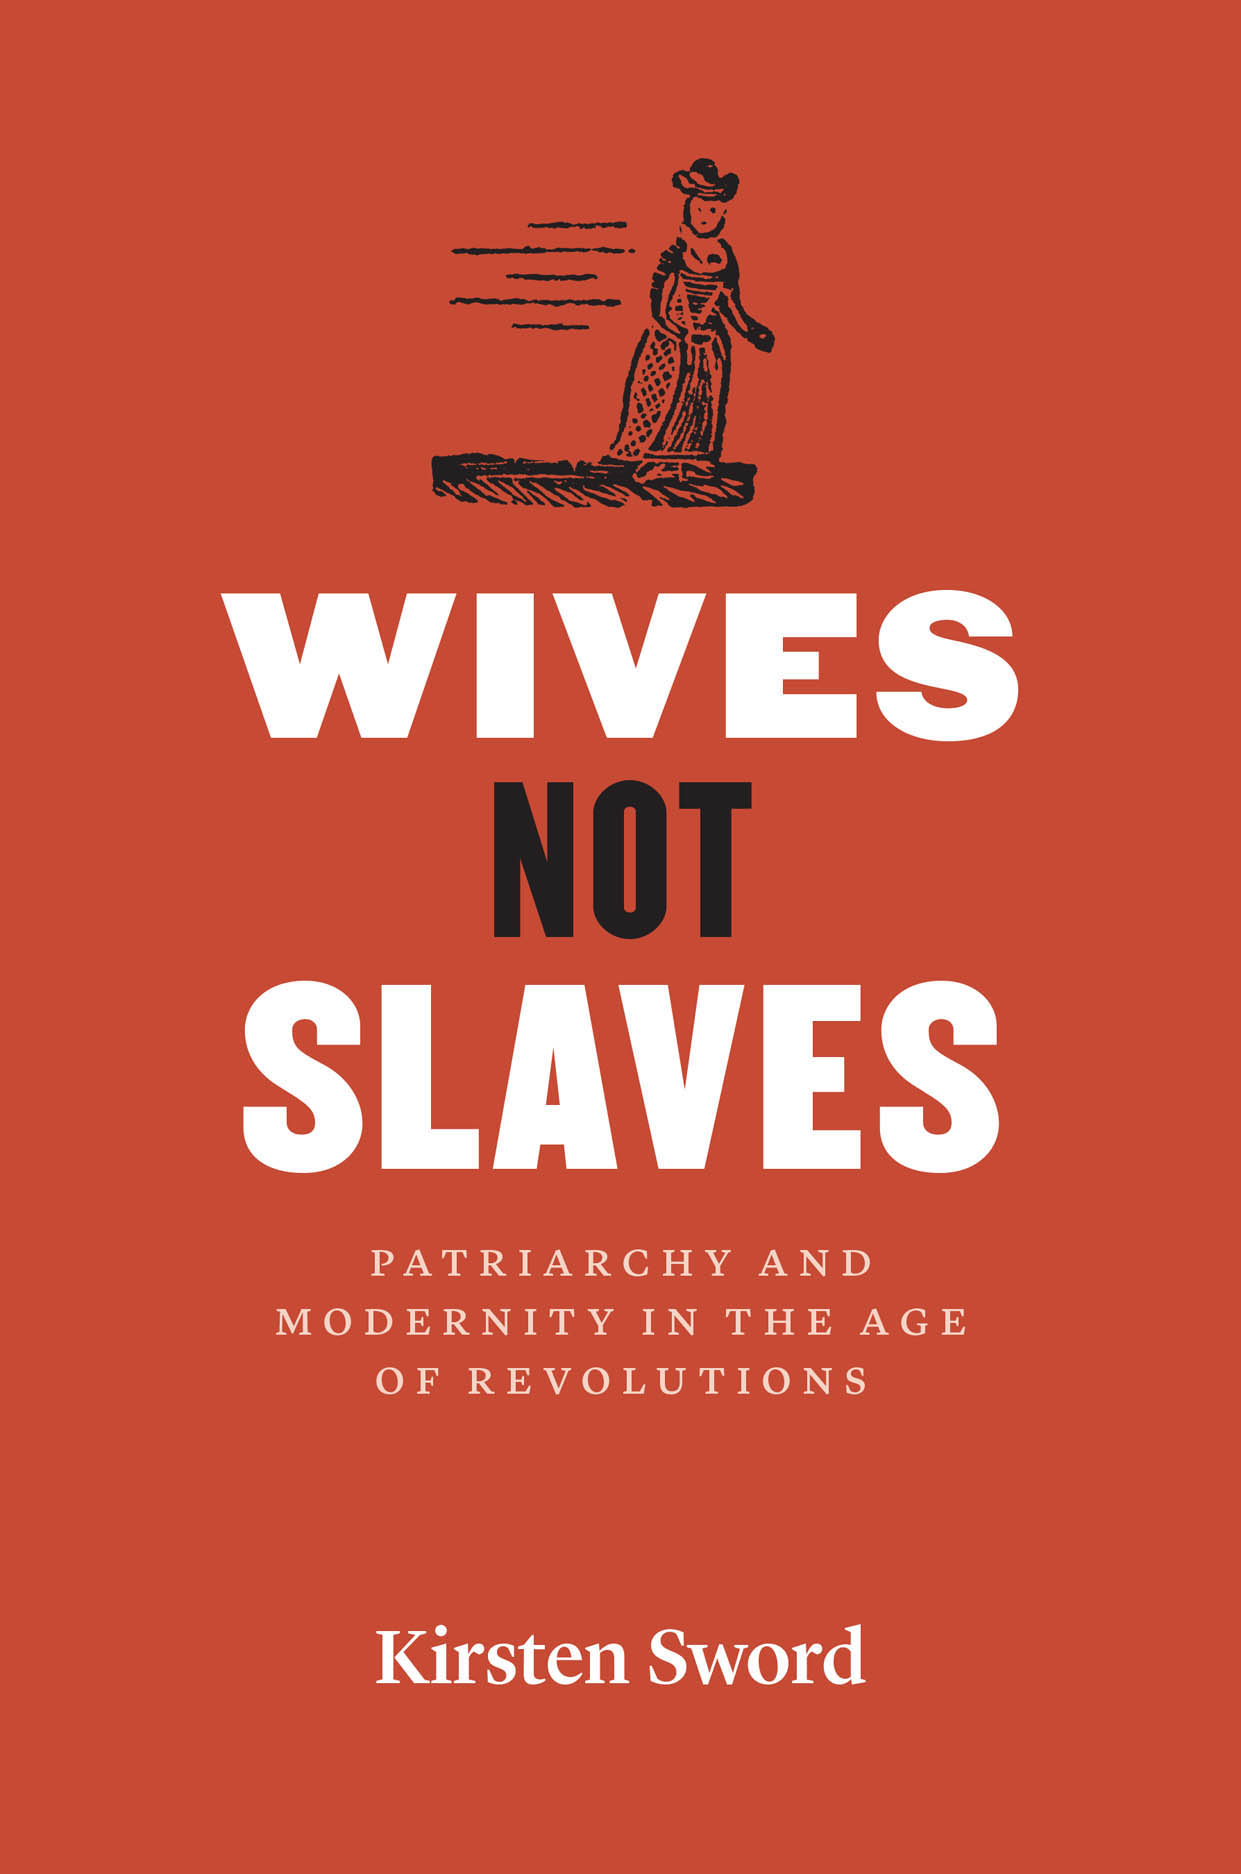 Wives Not Slaves: Patriarchy and Modernity in the Age of Revolutions